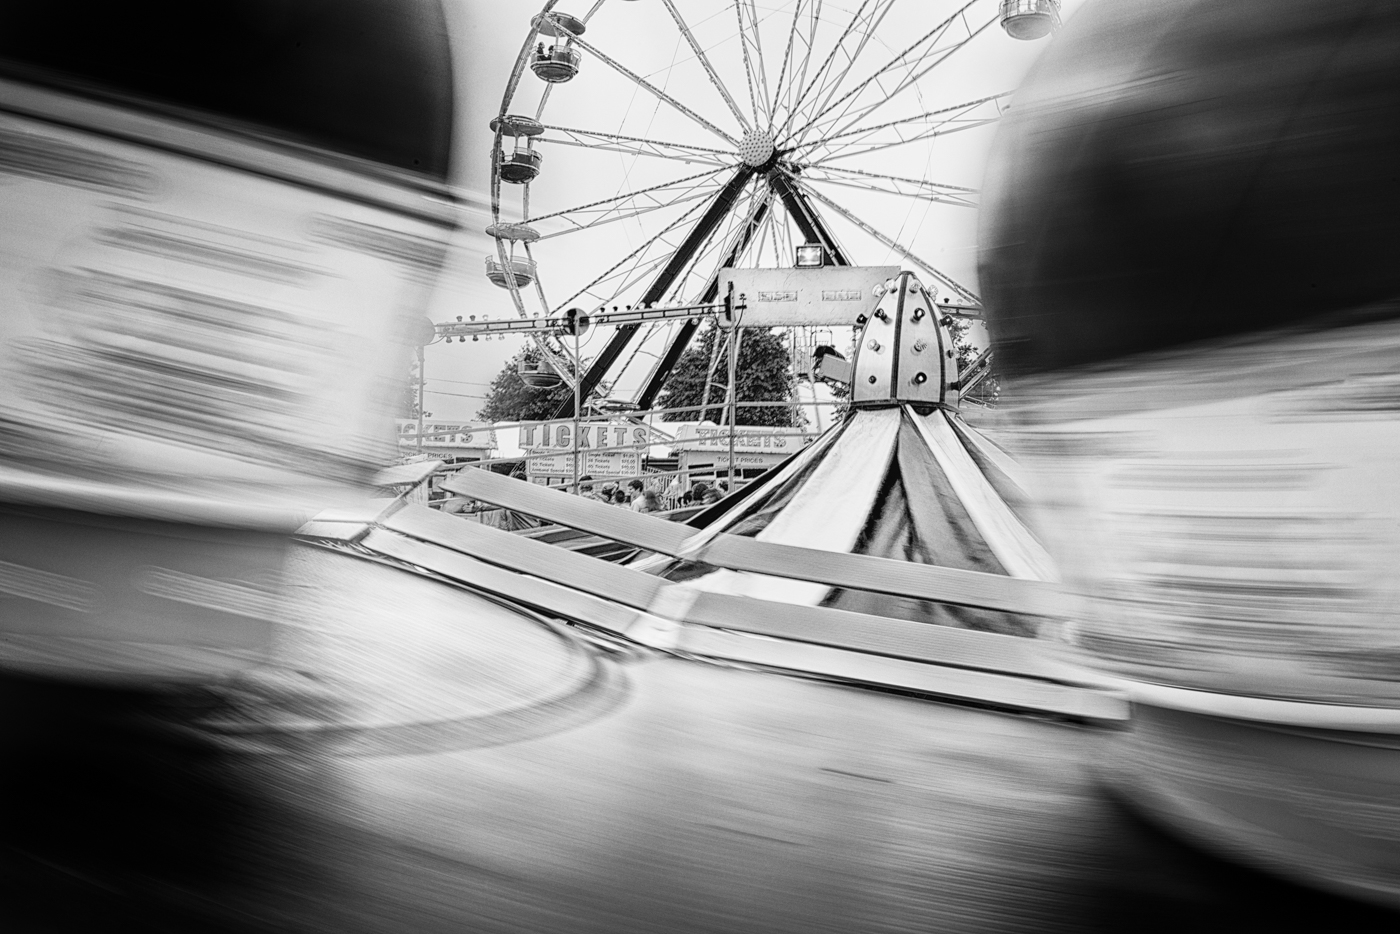 Tilt-a-Whirl in motion, Northwest Washington Fair 2014